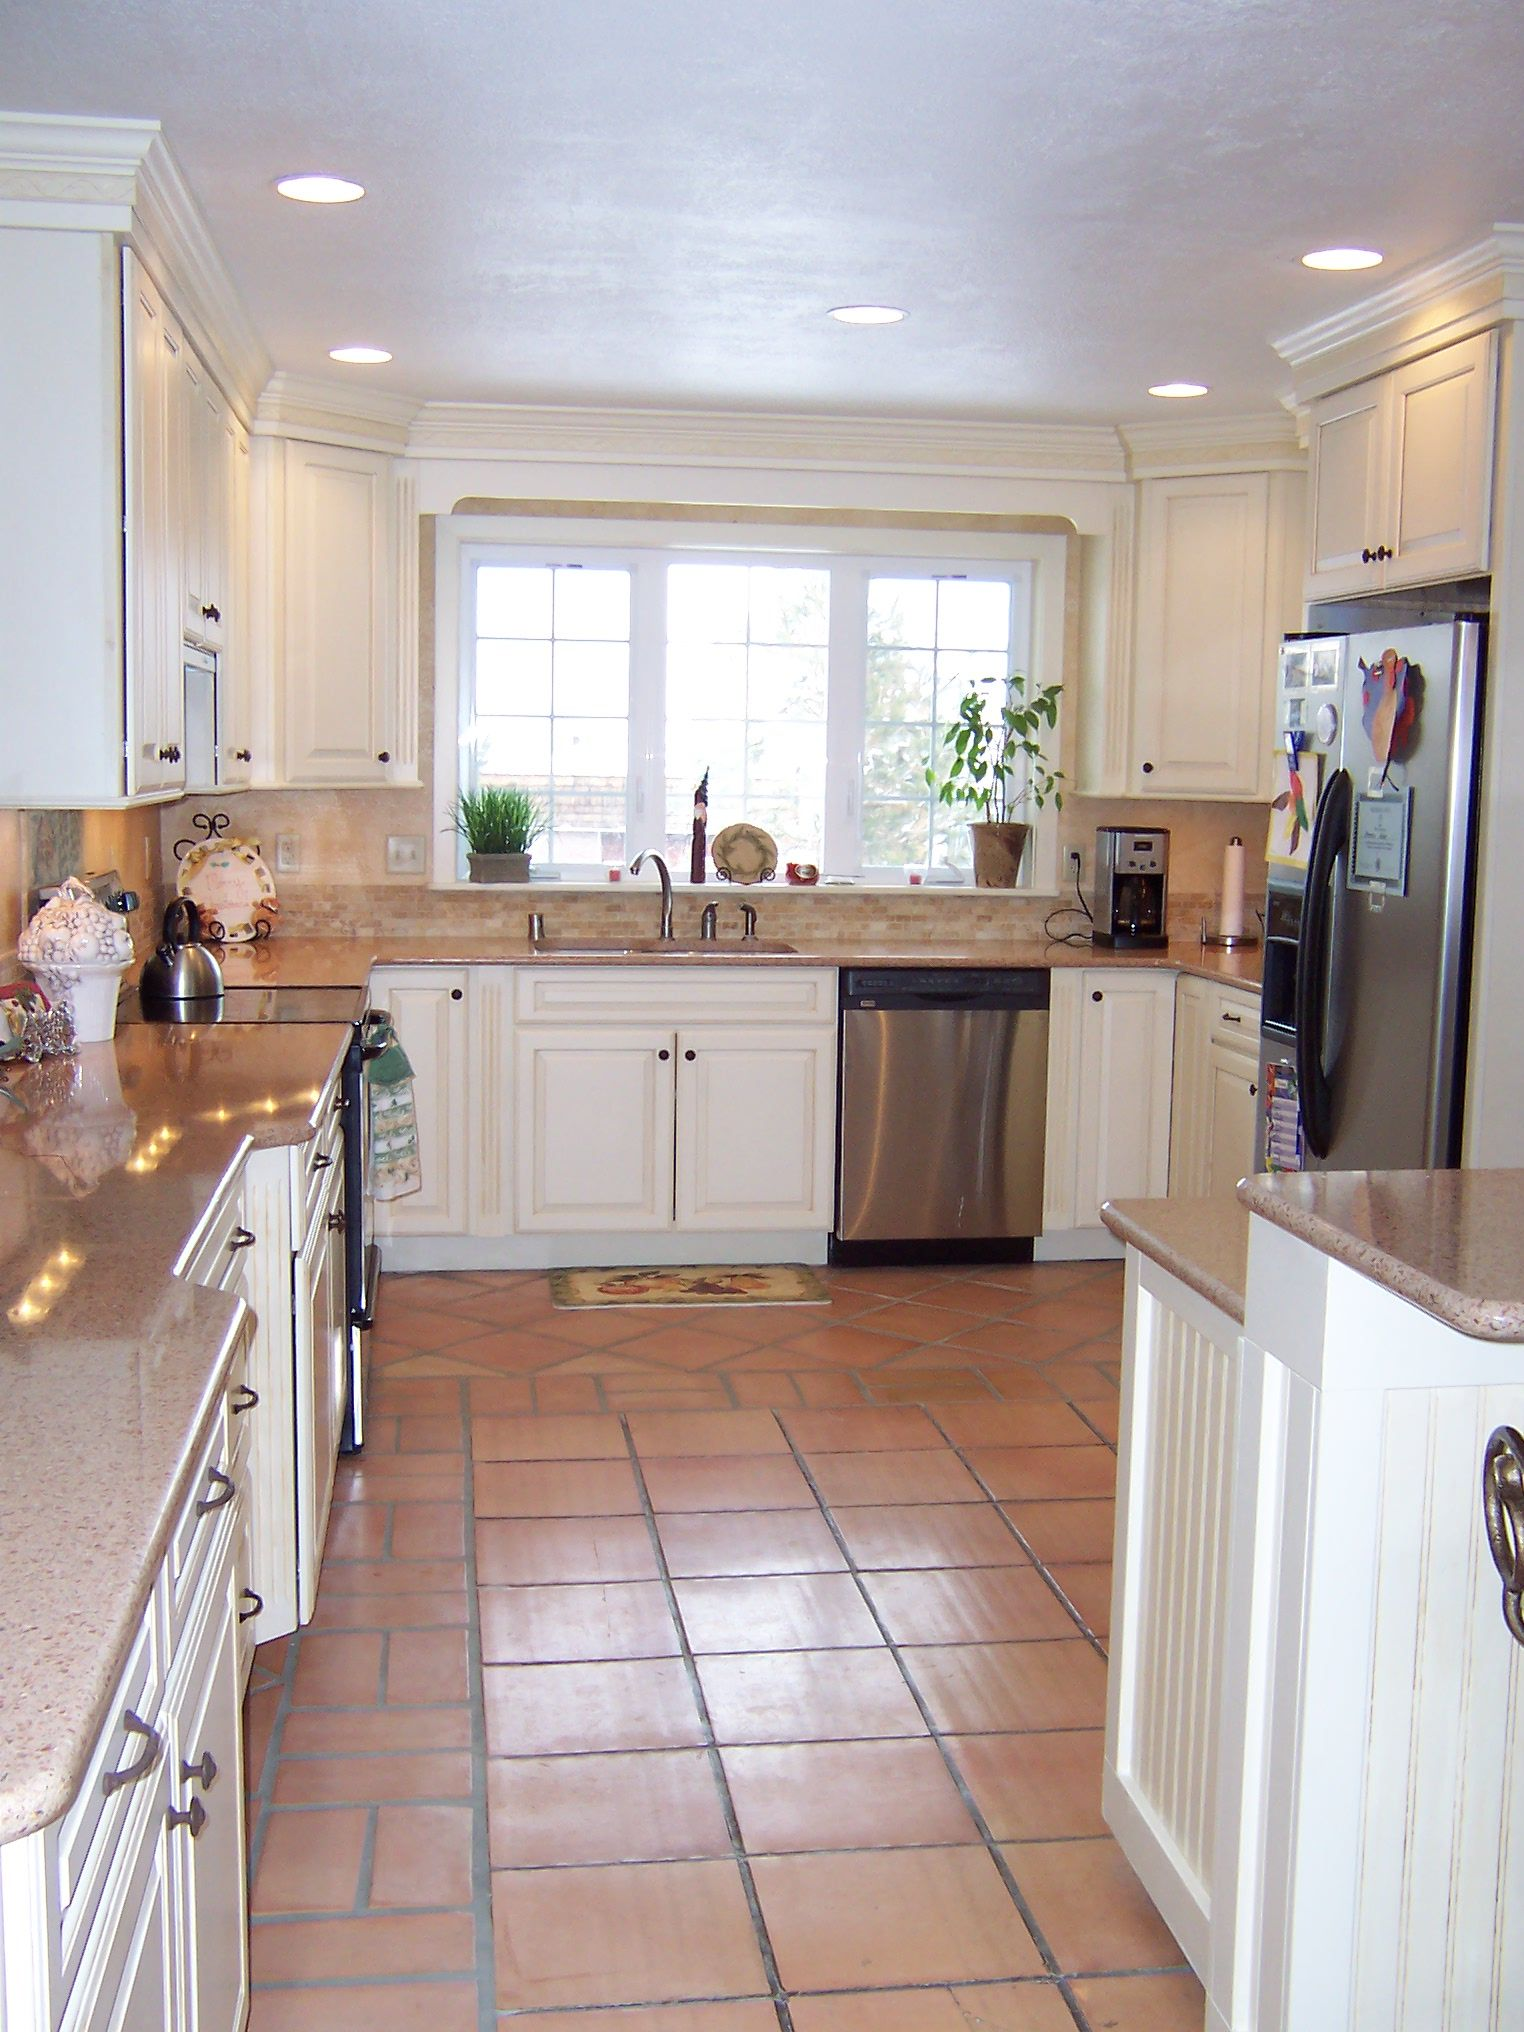 Interior Tile Floor Kitchen White Cabinets With Wonderful Spanish Style Kitchen Design With Saltillo Tile F Kitchen Design Kitchen Floor Tile Kitchen Remodel